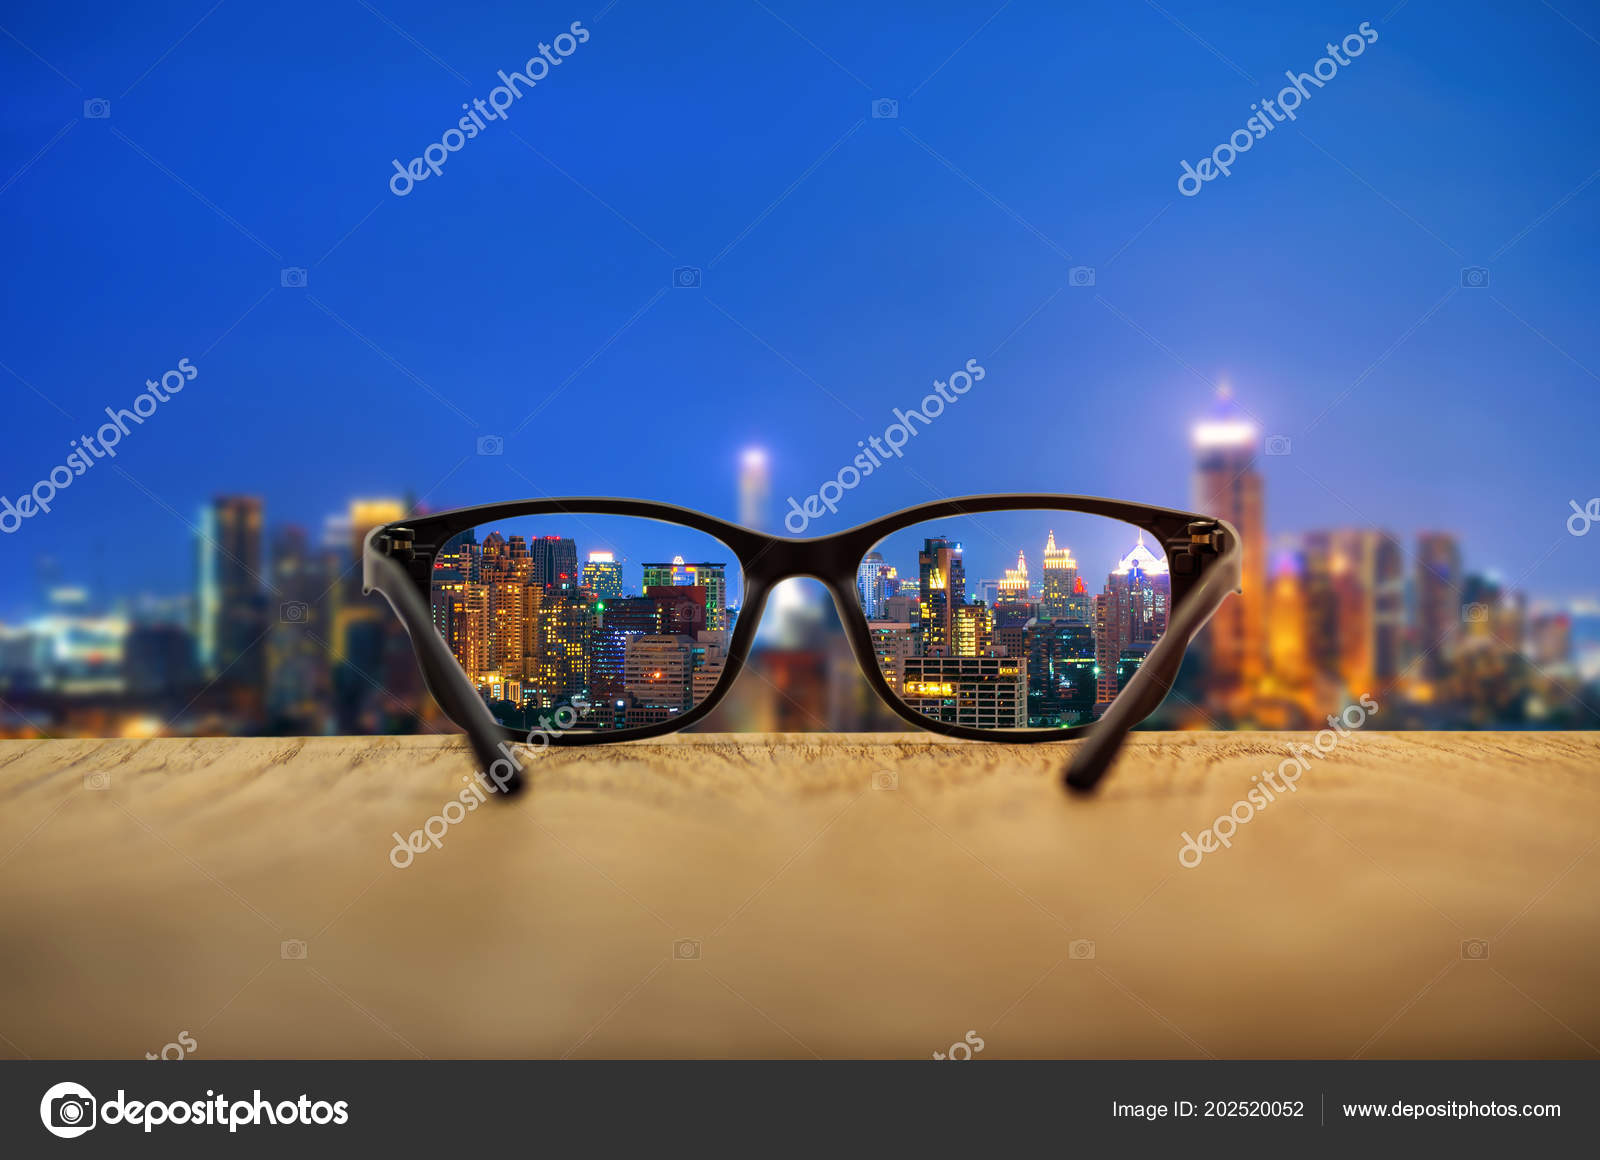 89e9570c47 Clear Cityscape Focused Glasses Lenses Blurred Cityscape Background — Stock  Photo